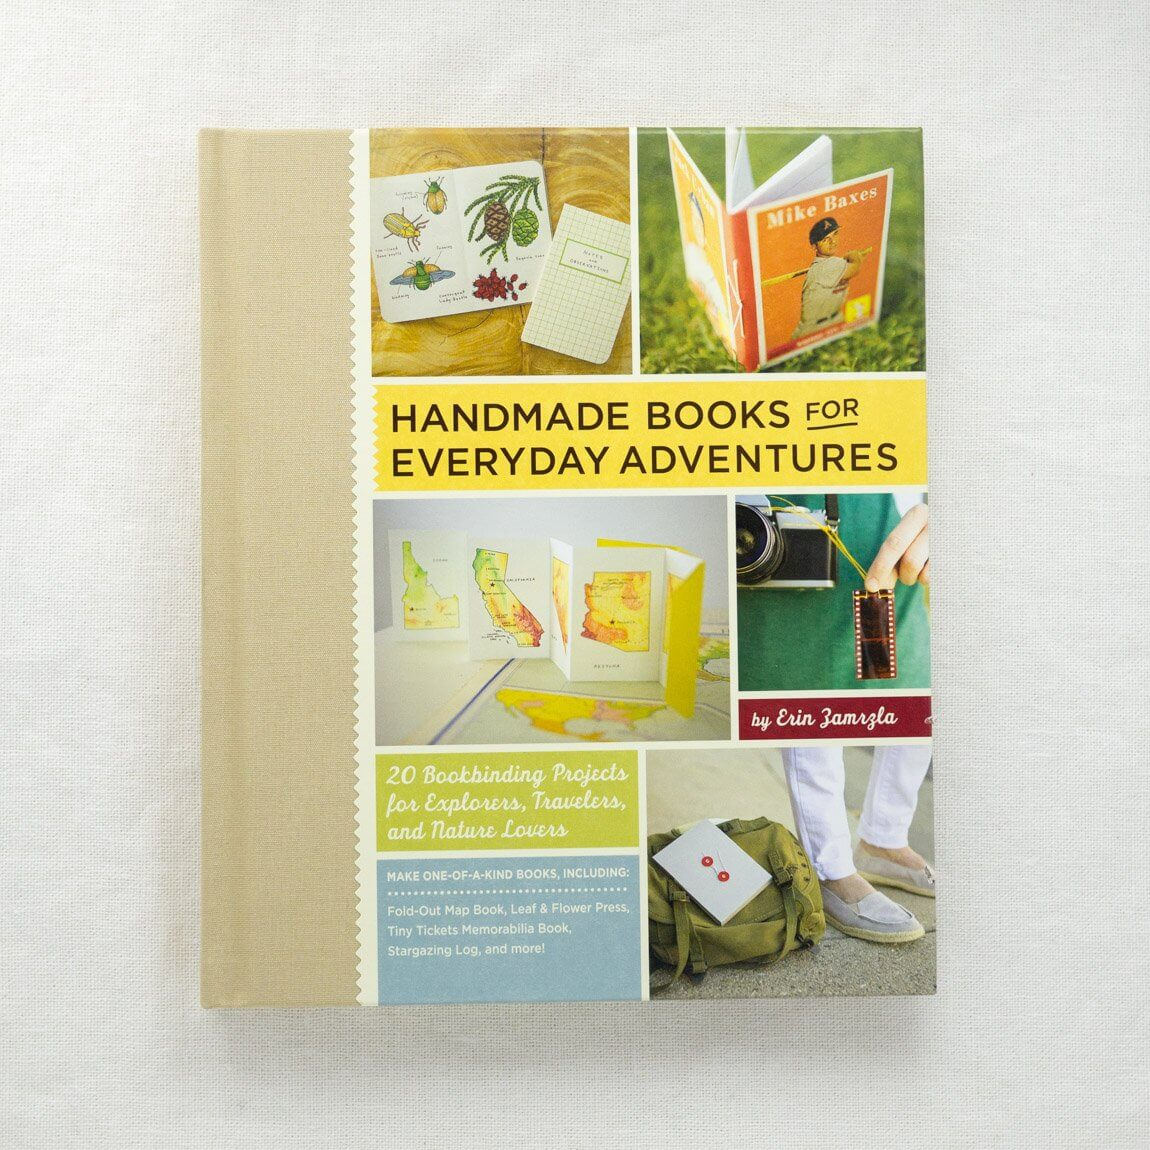 Handmade Books for Everyday Adventures